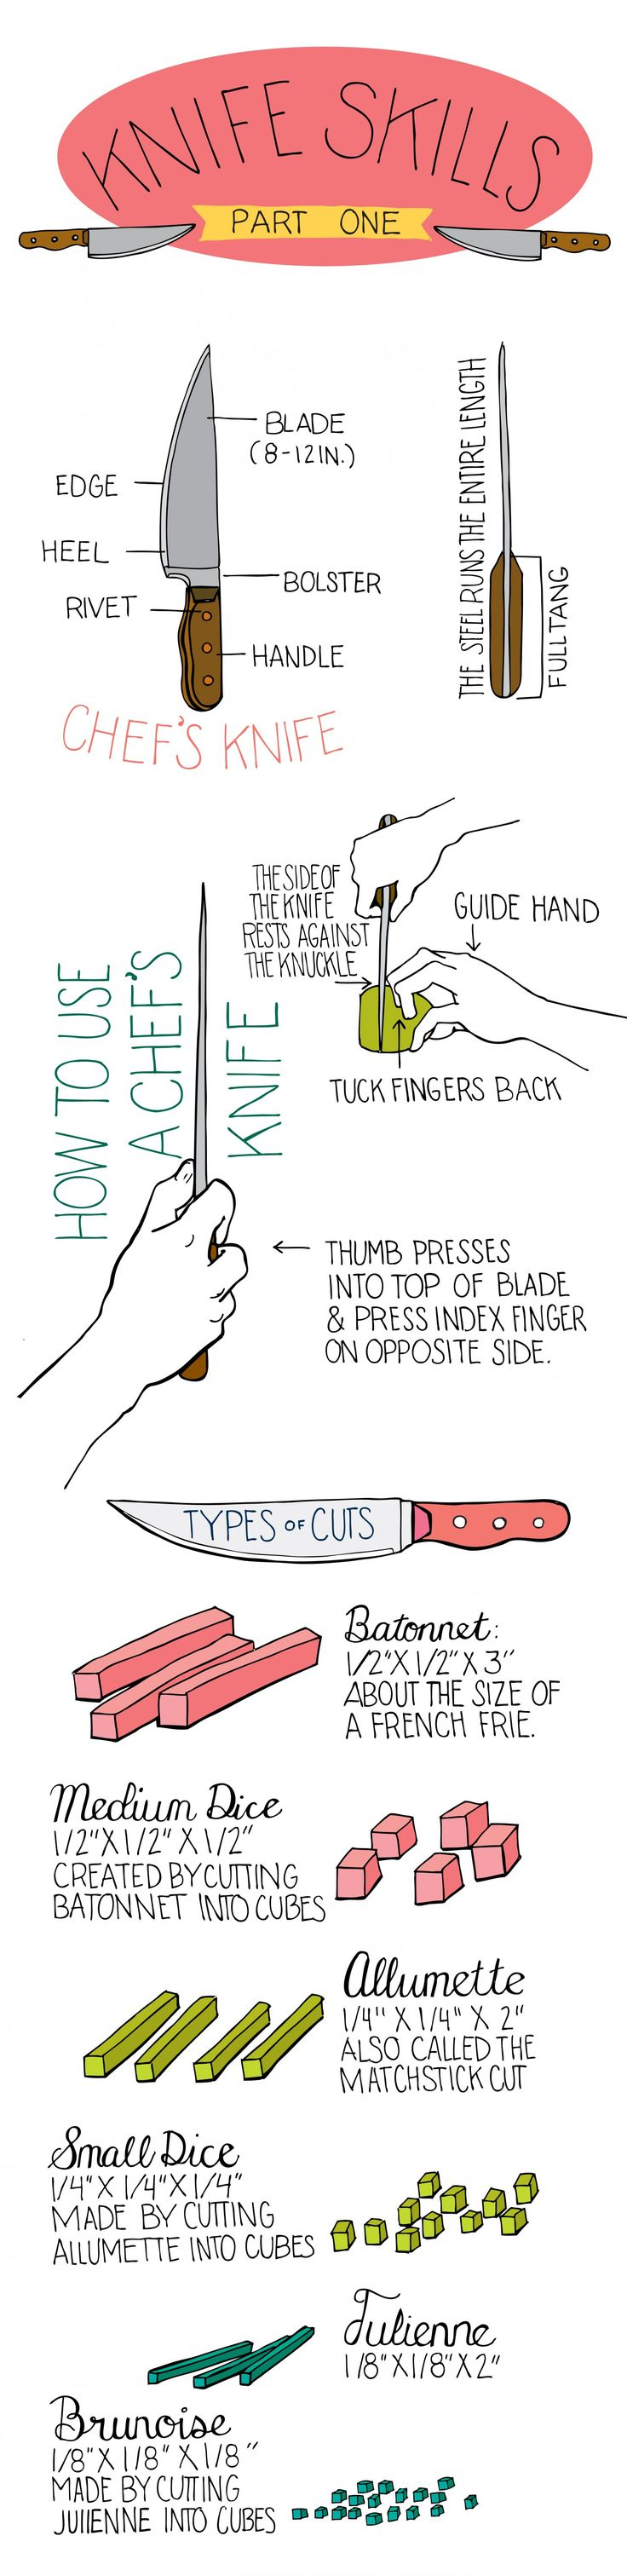 Knife Skills Infographic Part 1 by illustratedbites #Infographic #Knife_Skills